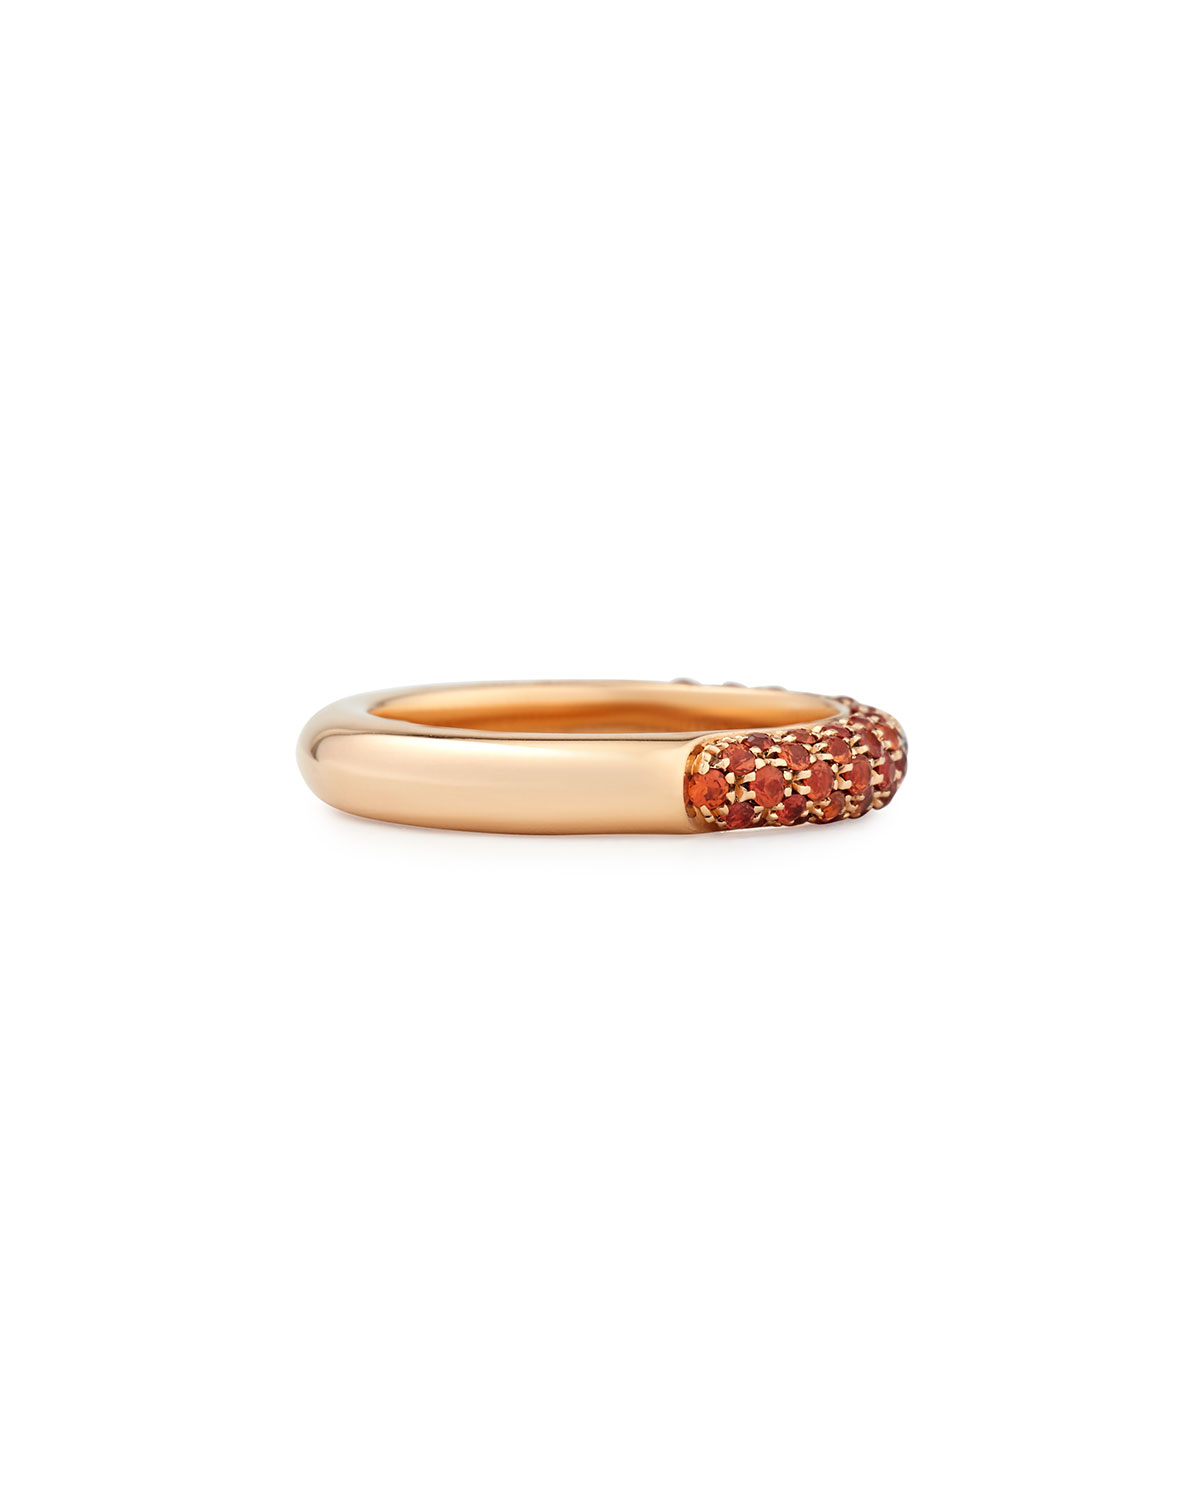 Adolfo Courrier Pop Collection Orange and Diamond Band Ring JKtY0y